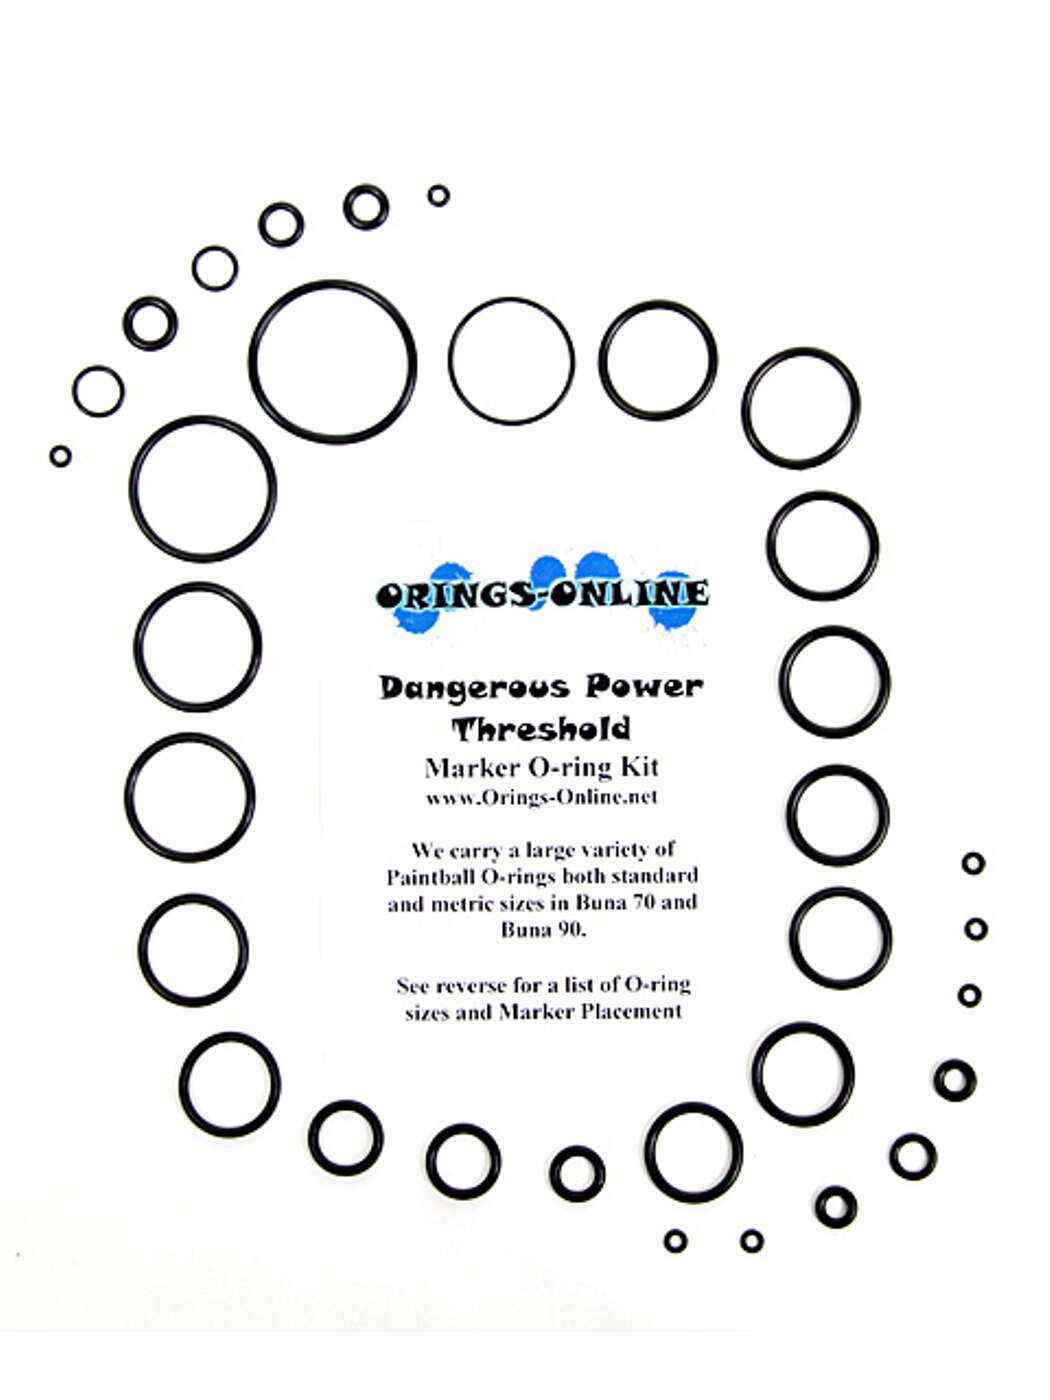 Dangerous Power - Threshold Marker O-ring Kit